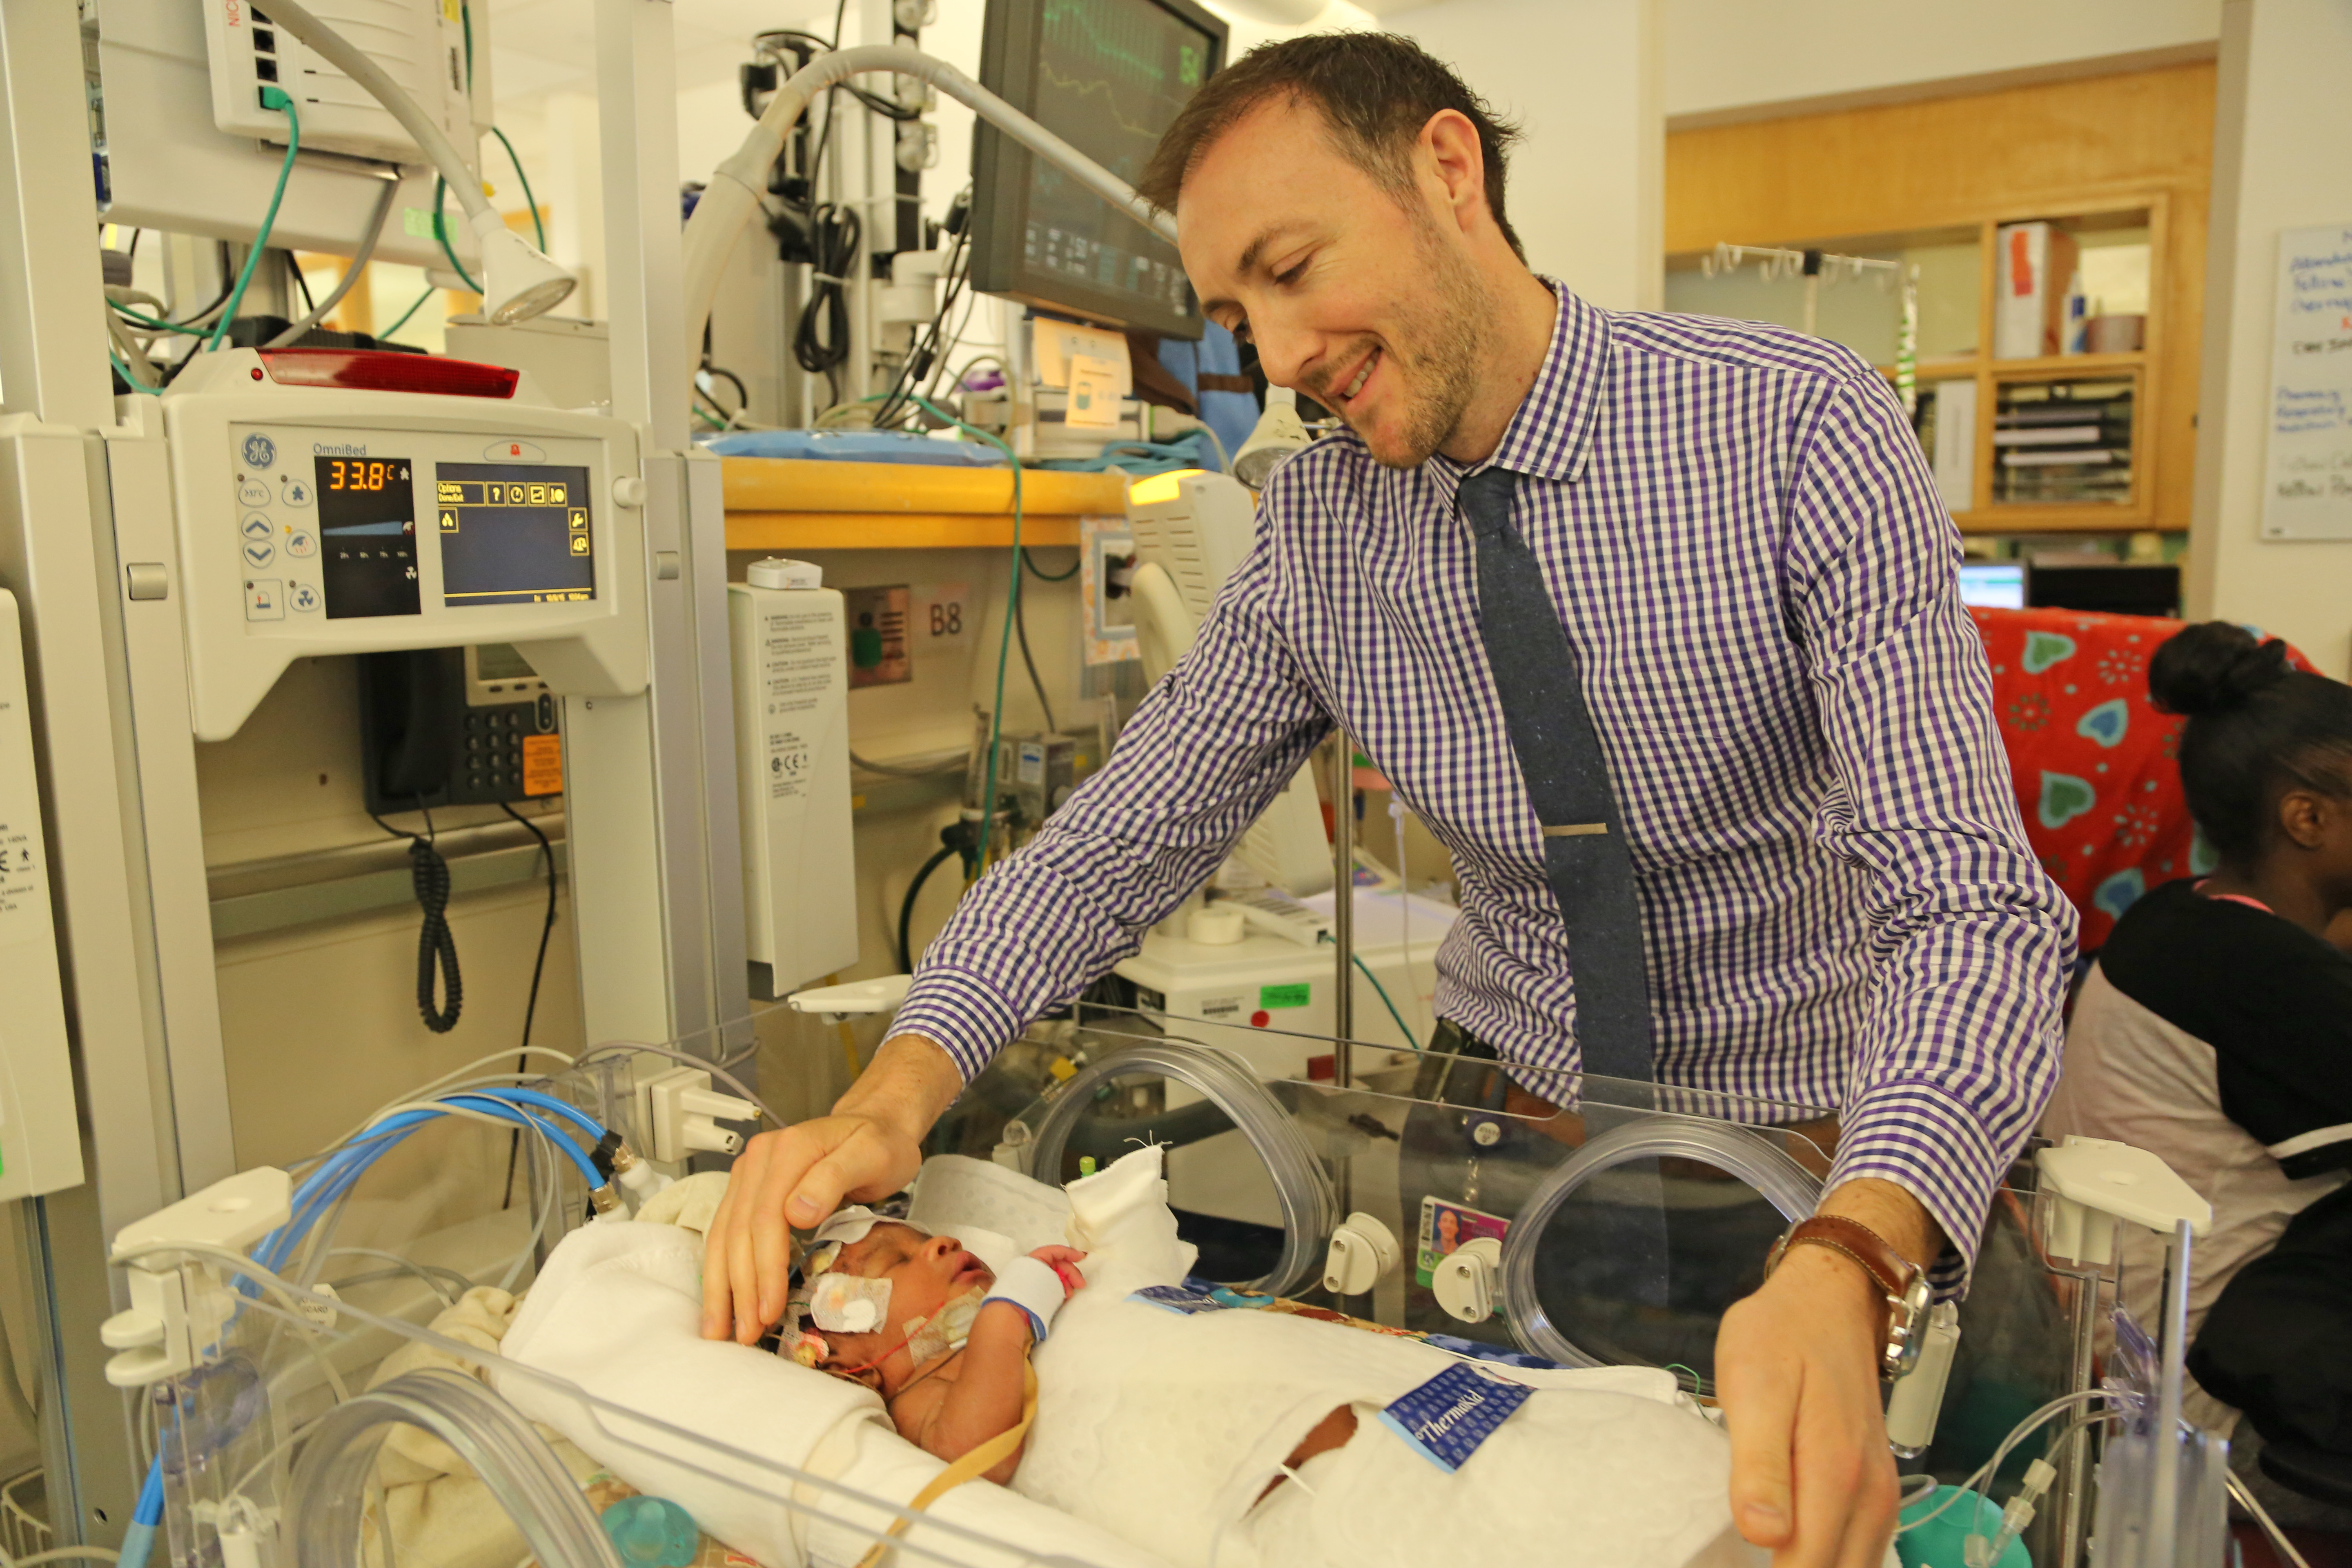 BWH NICU Medical Director Michael Prendergast cares for a baby who is wrapped in a cooling blanket.